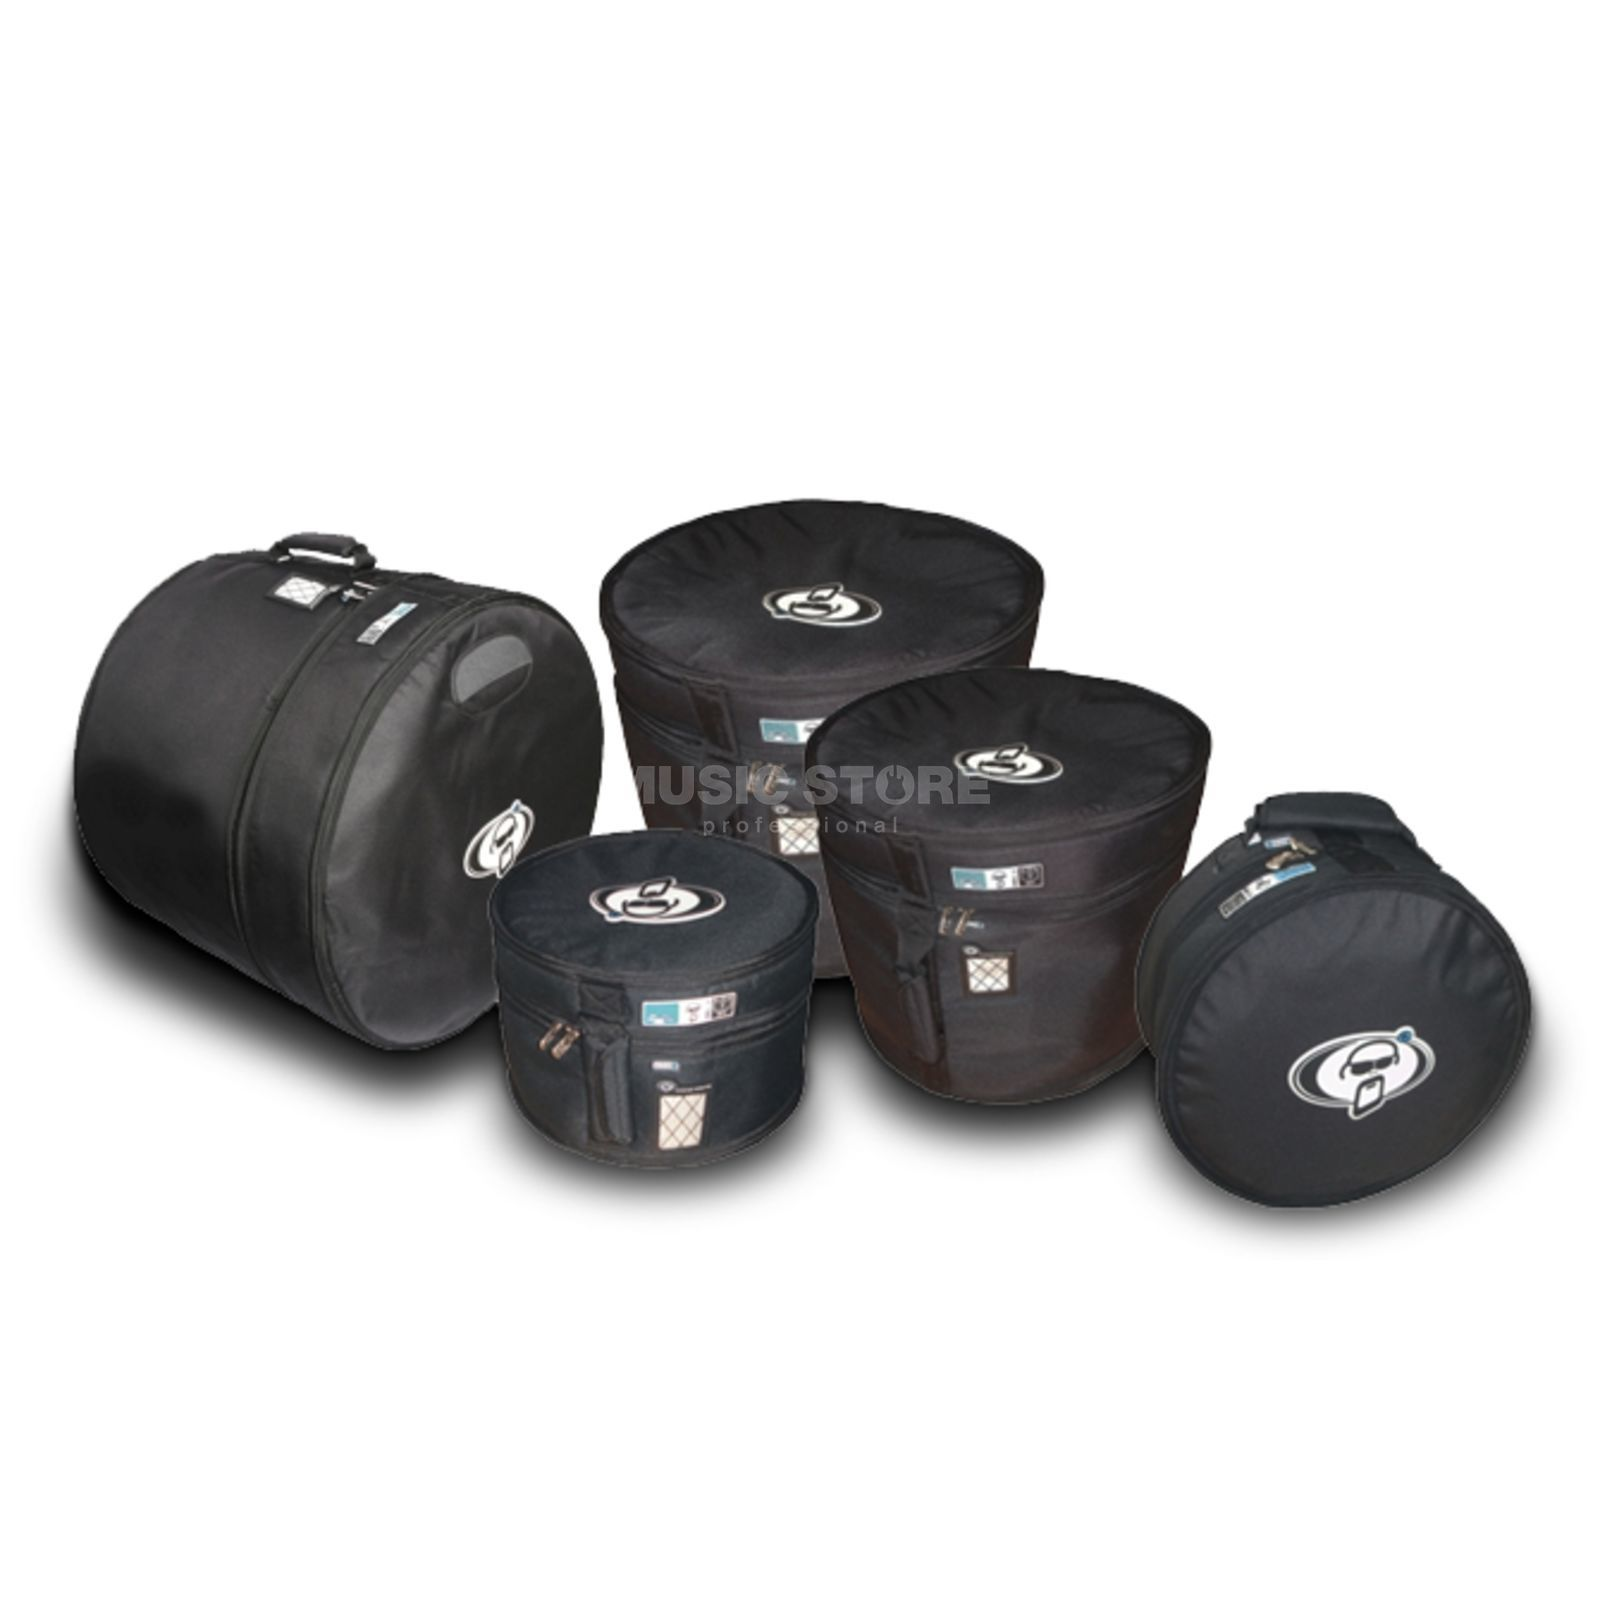 "Protection Racket BagSet SET 3, 24""x18"", 12""x9"", 14""x14"", 16""x16"", 14""x6,5"" Produktbillede"